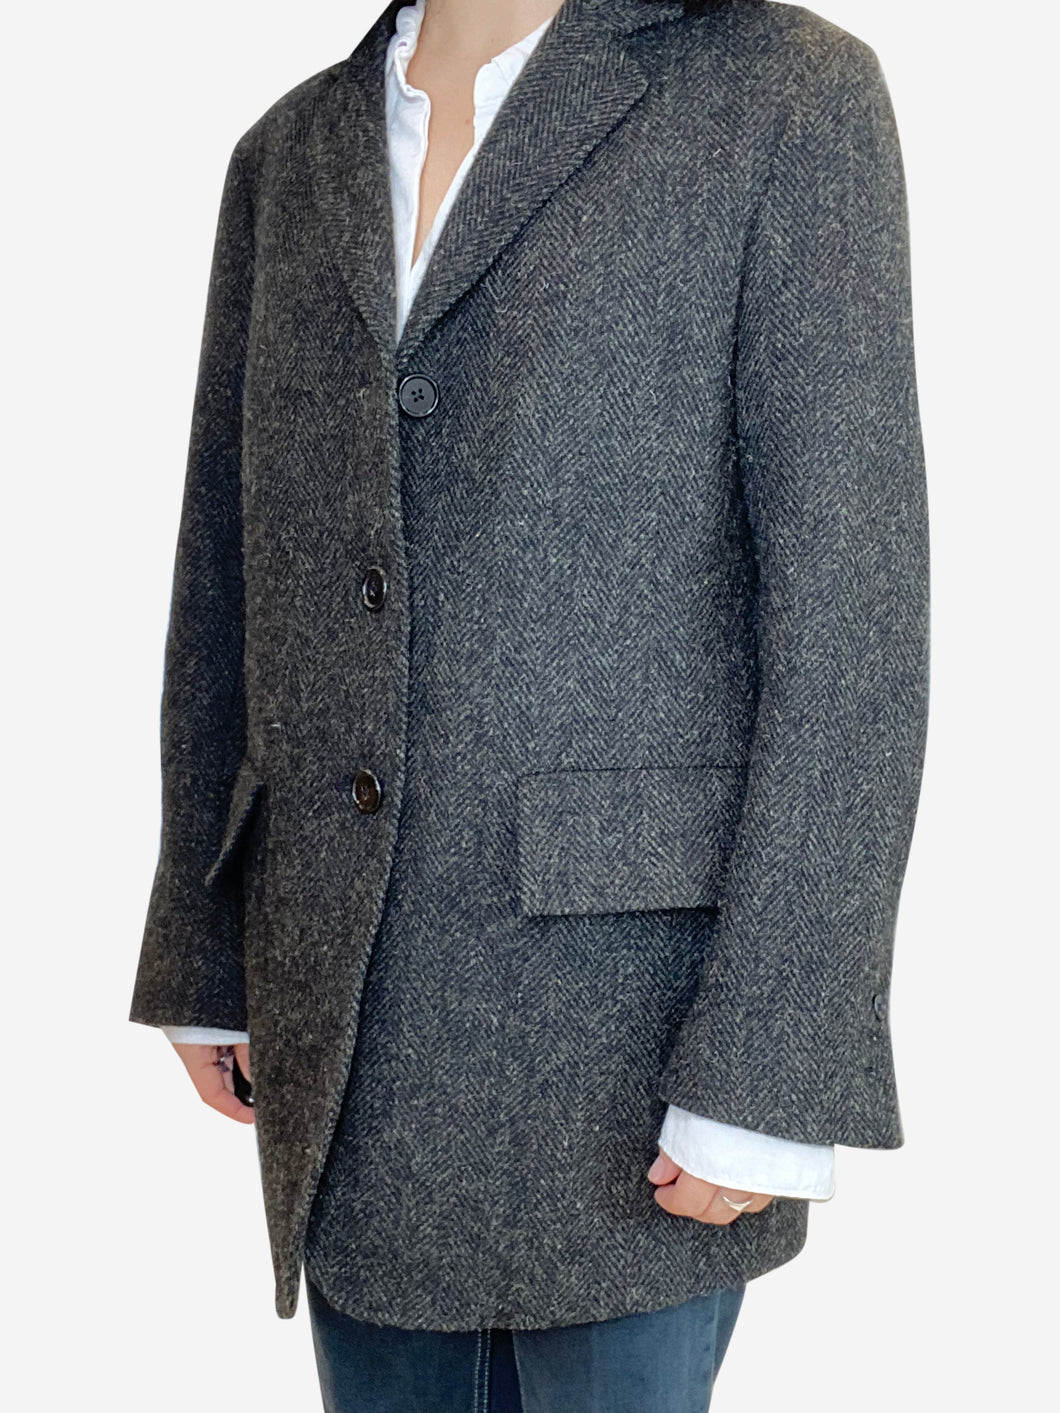 Grey and brown Harris Tweed blazer jacket- size S